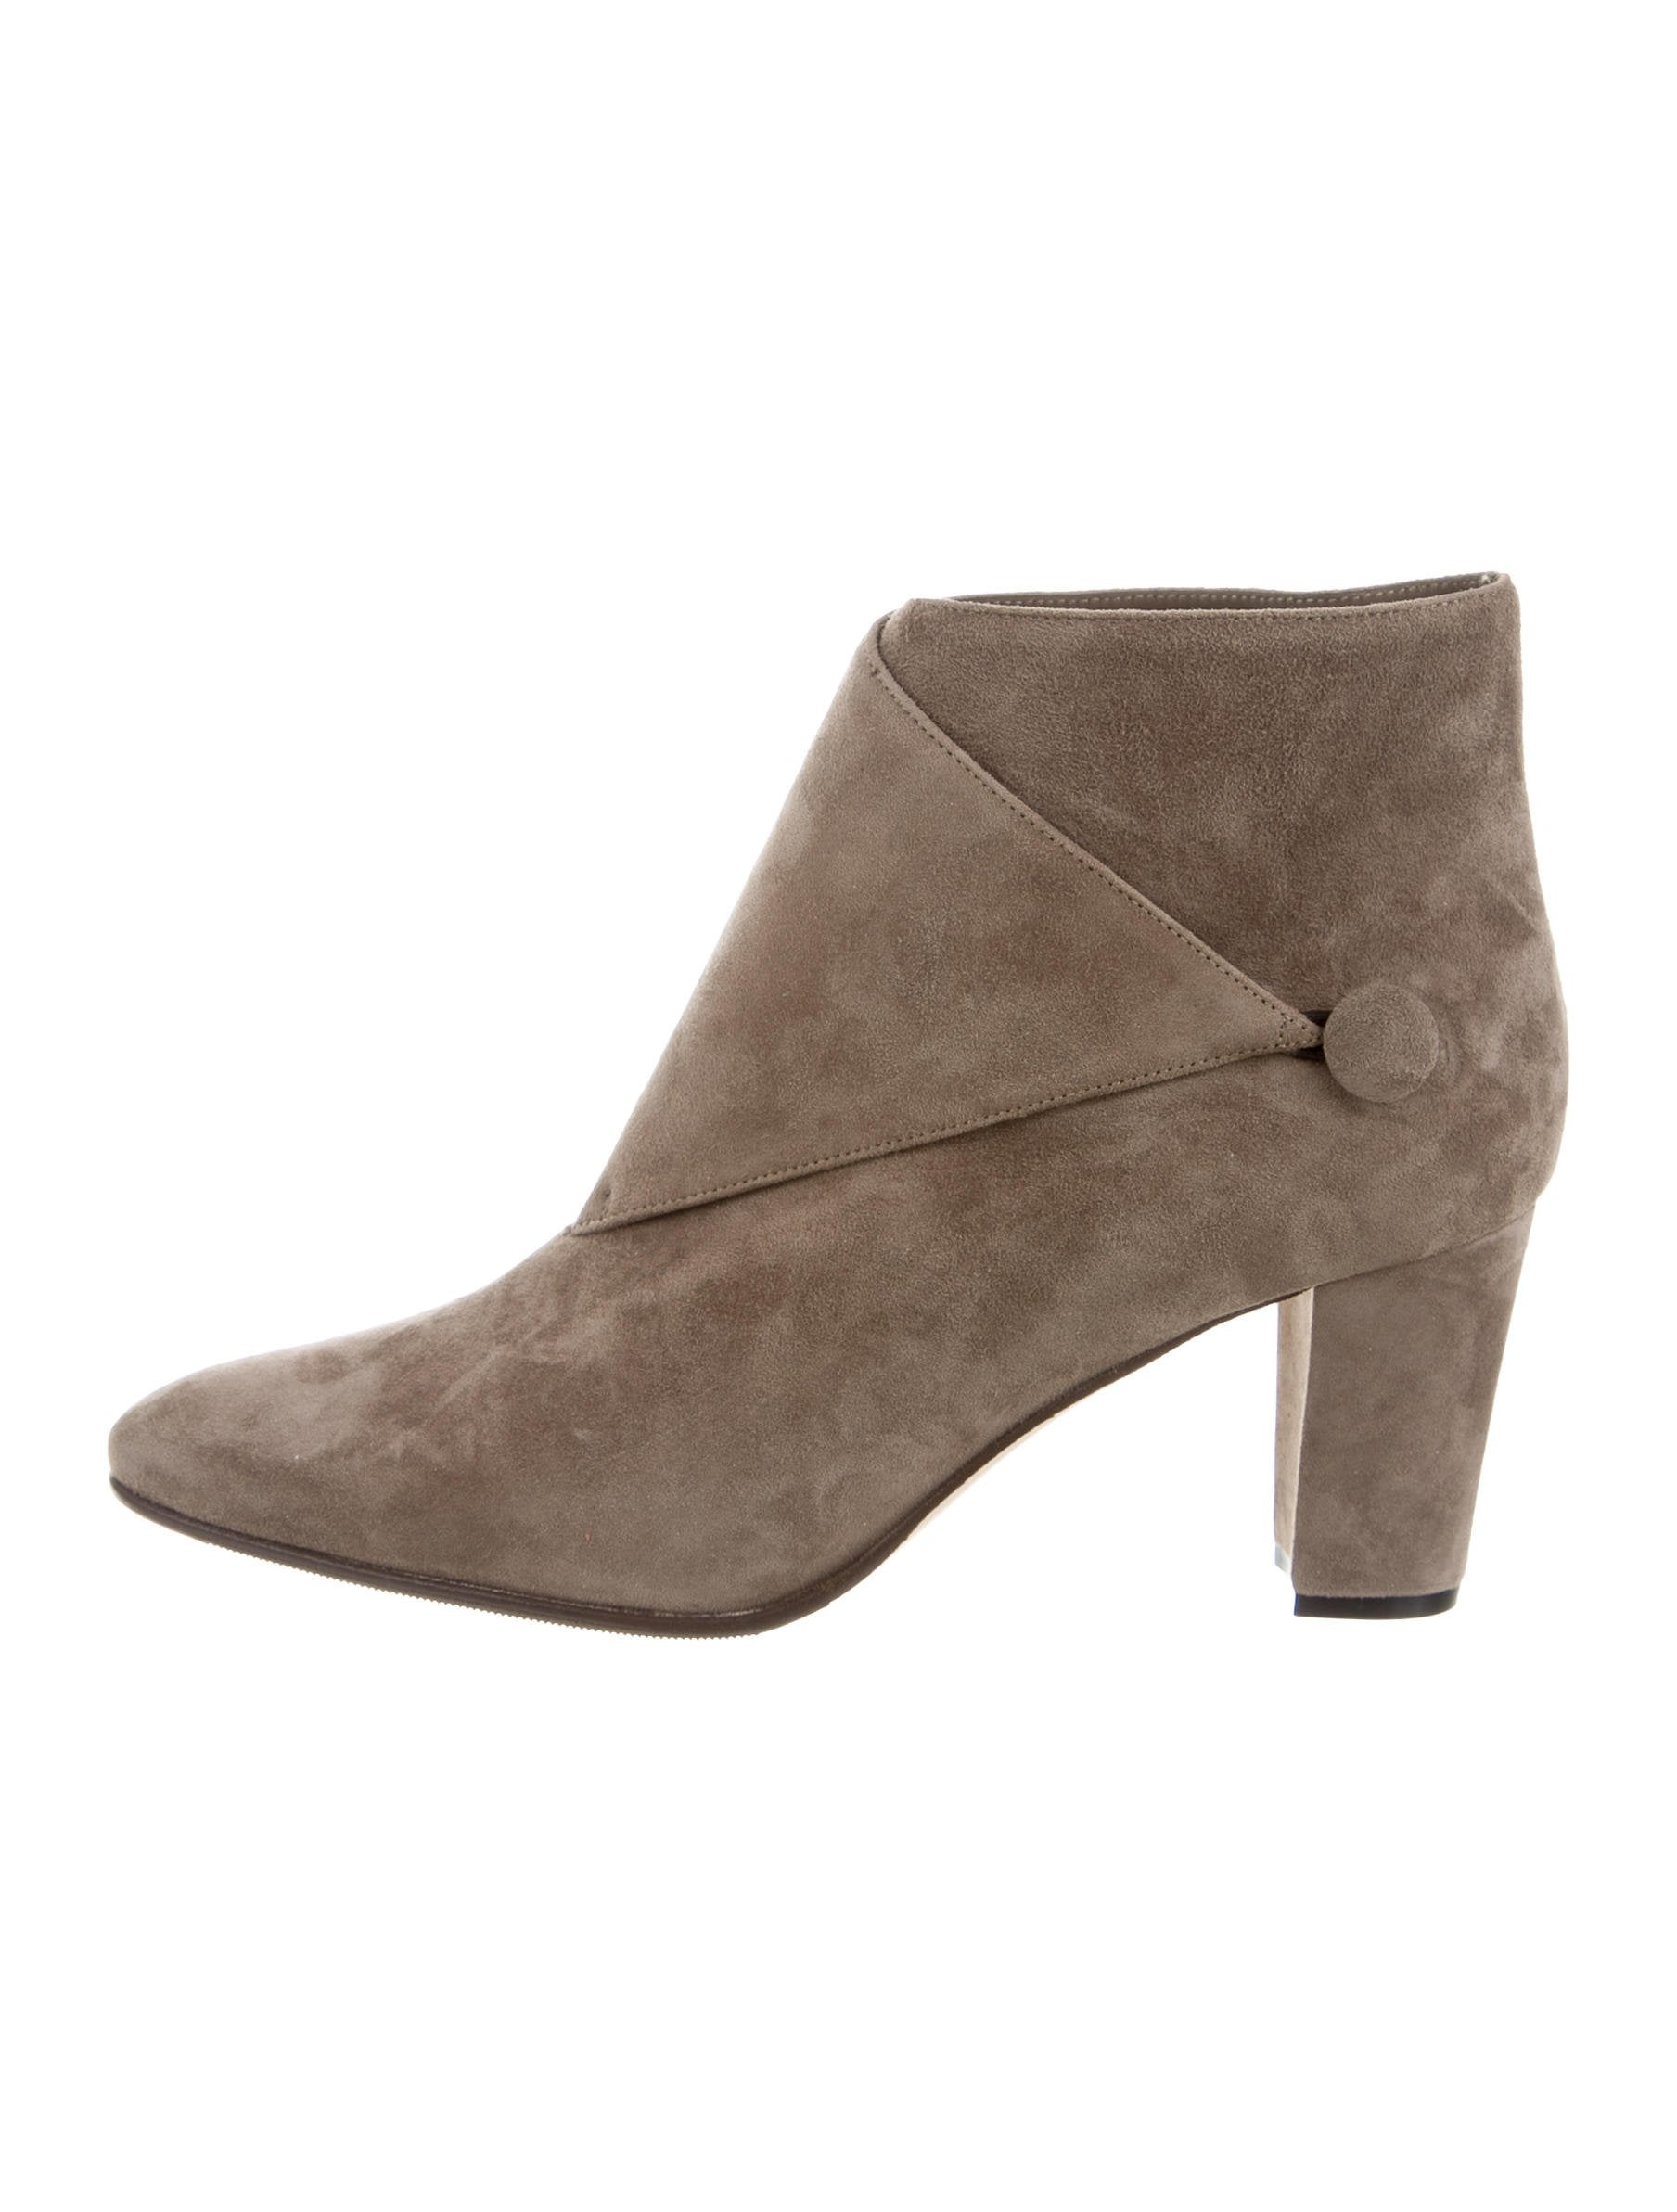 Manolo Blahnik Suede Ankle Boots - Shoes - MOO62106 | The ...